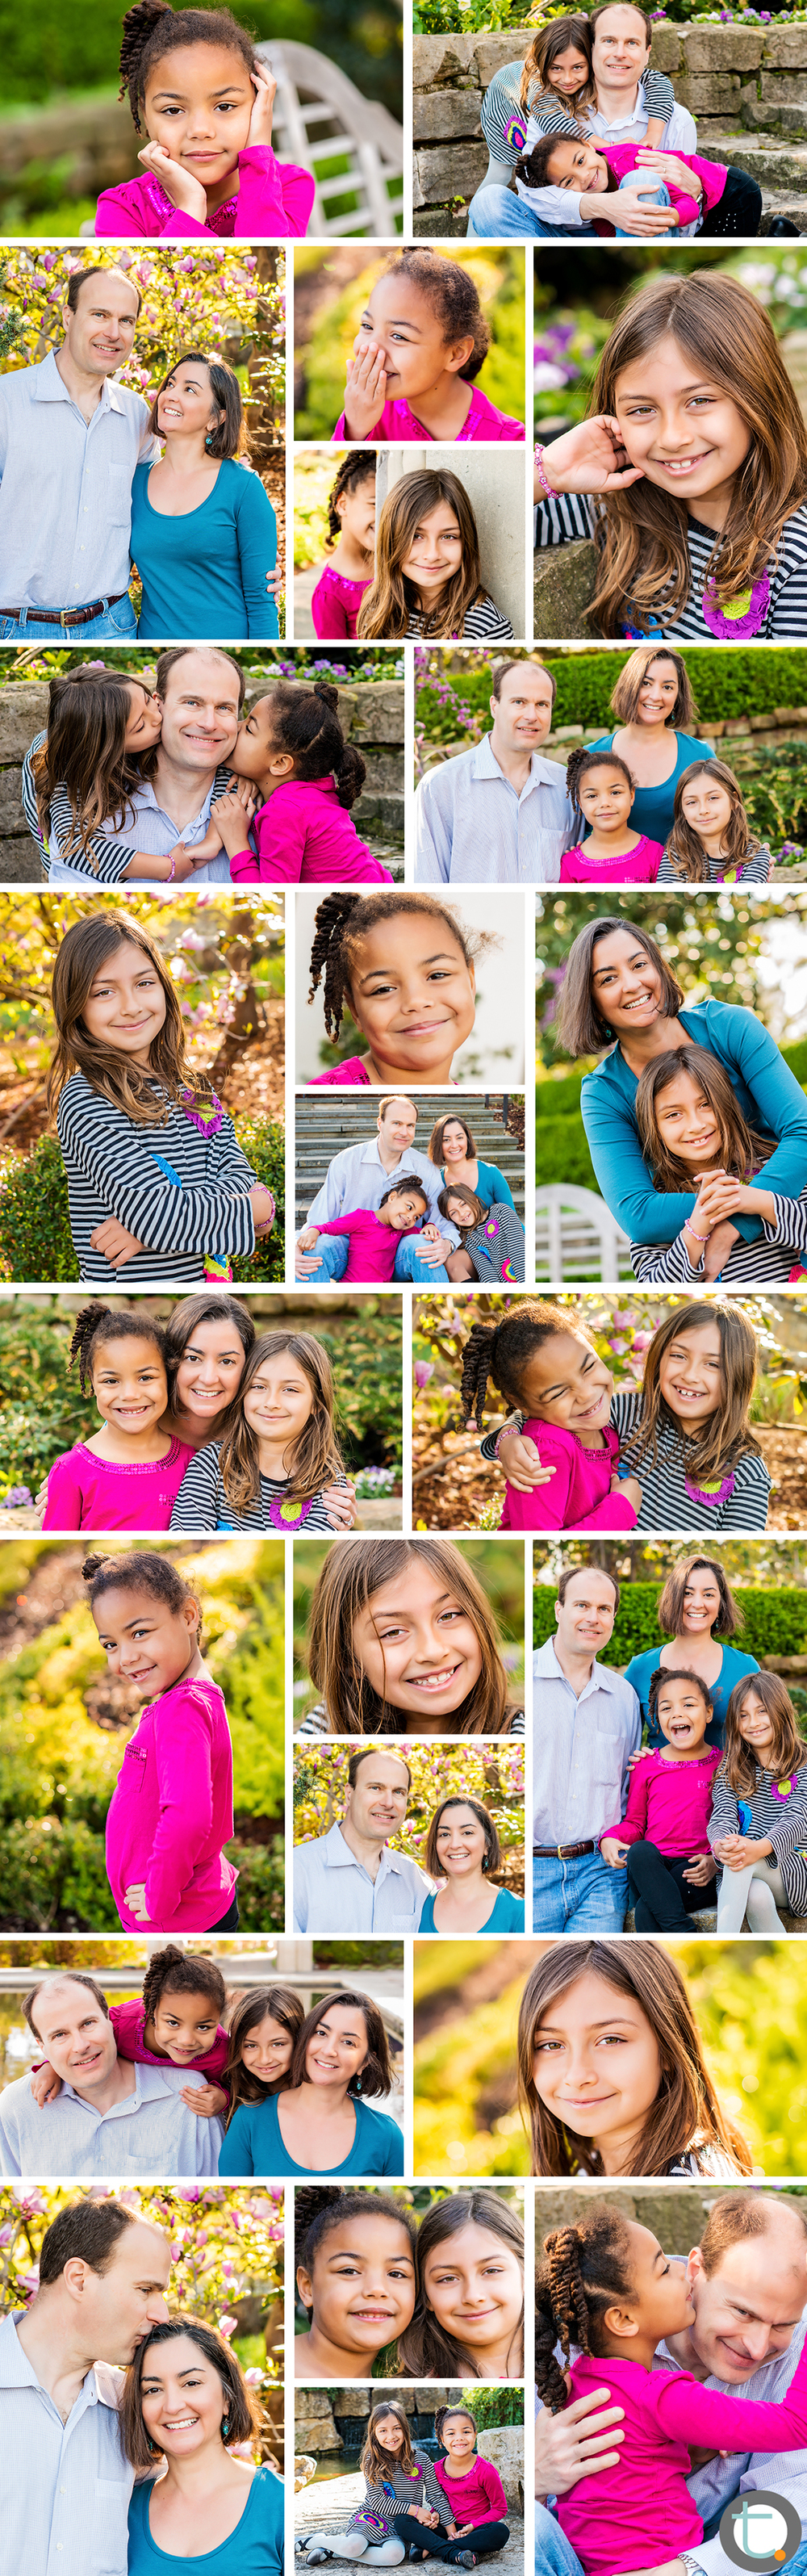 child_girls_families_arboretum_portraits_children_tracyallynphotography_2014